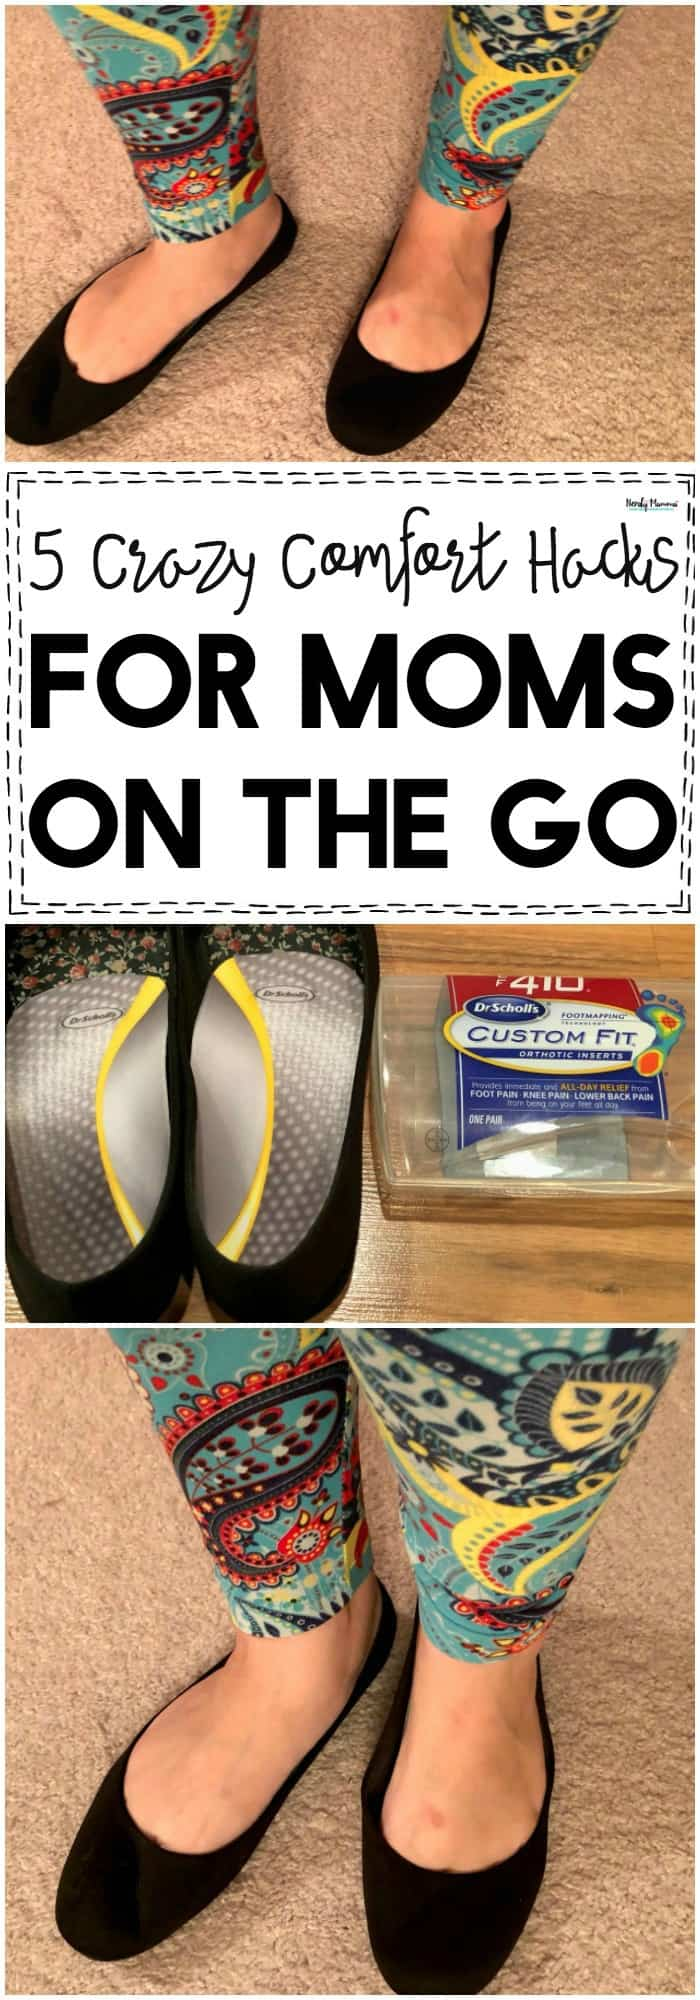 5 Crazy Comfort Hacks for Moms on the Go